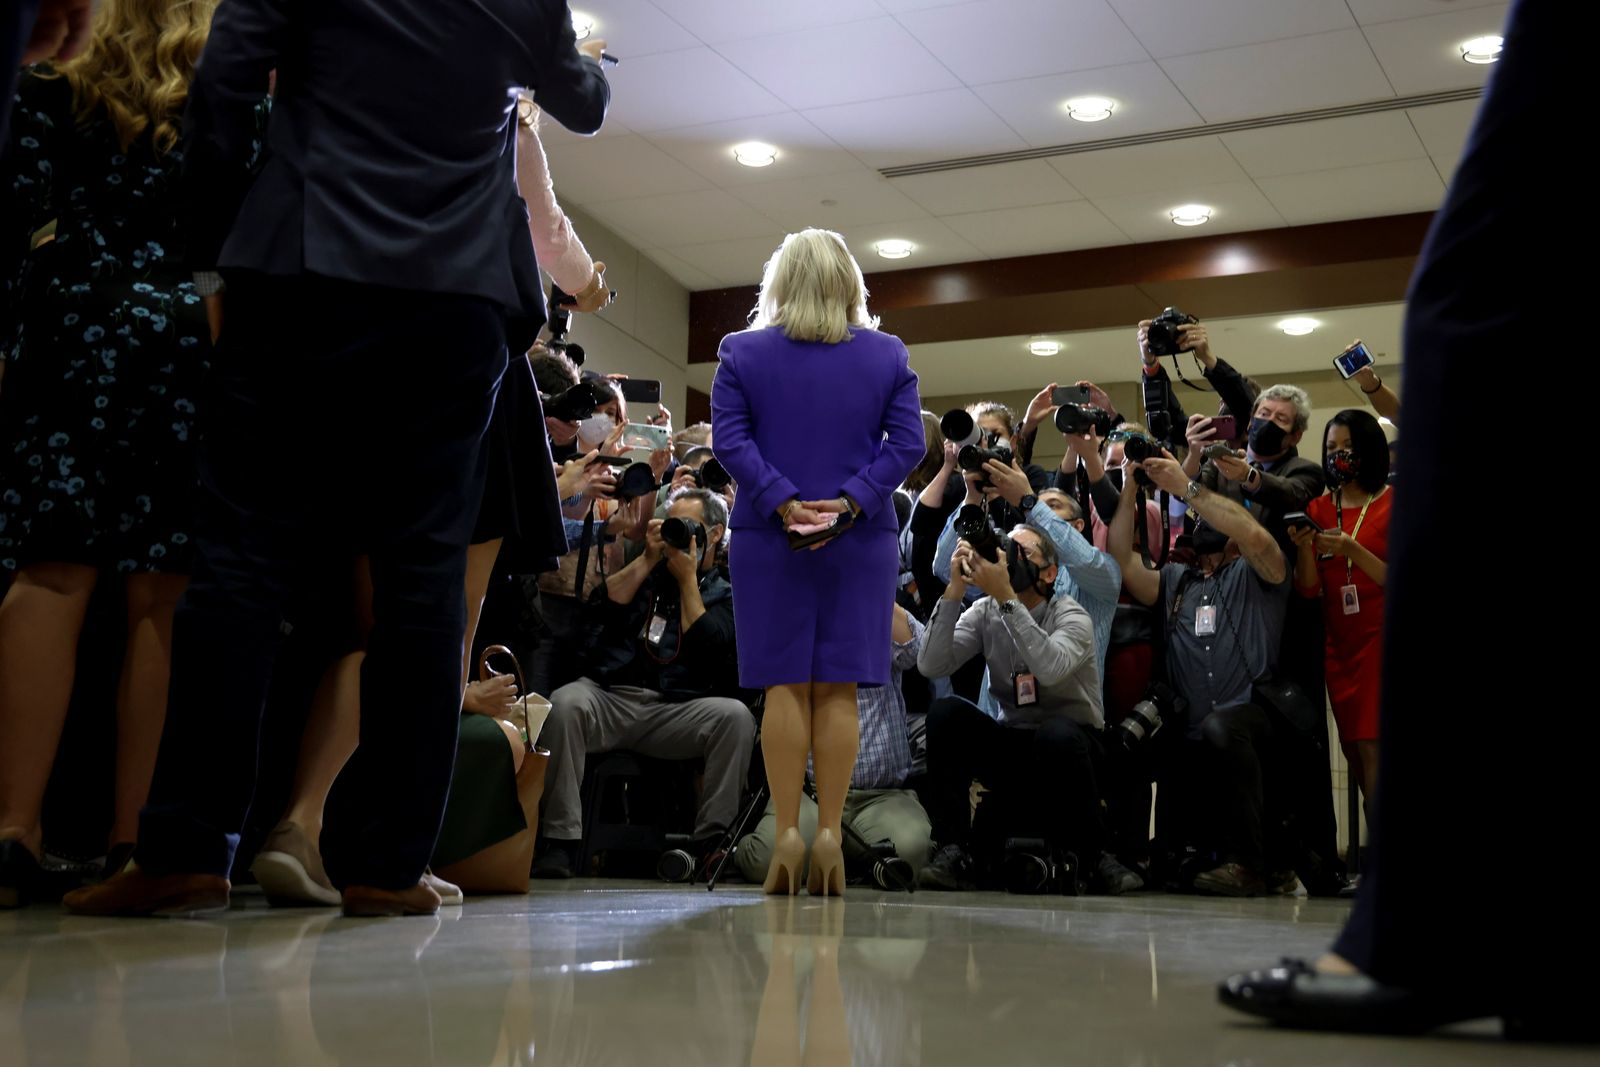 U.S. Representative Cheney speaks to reporters after her removal as chair of the House Republican Conference on Capitol Hill in Washington